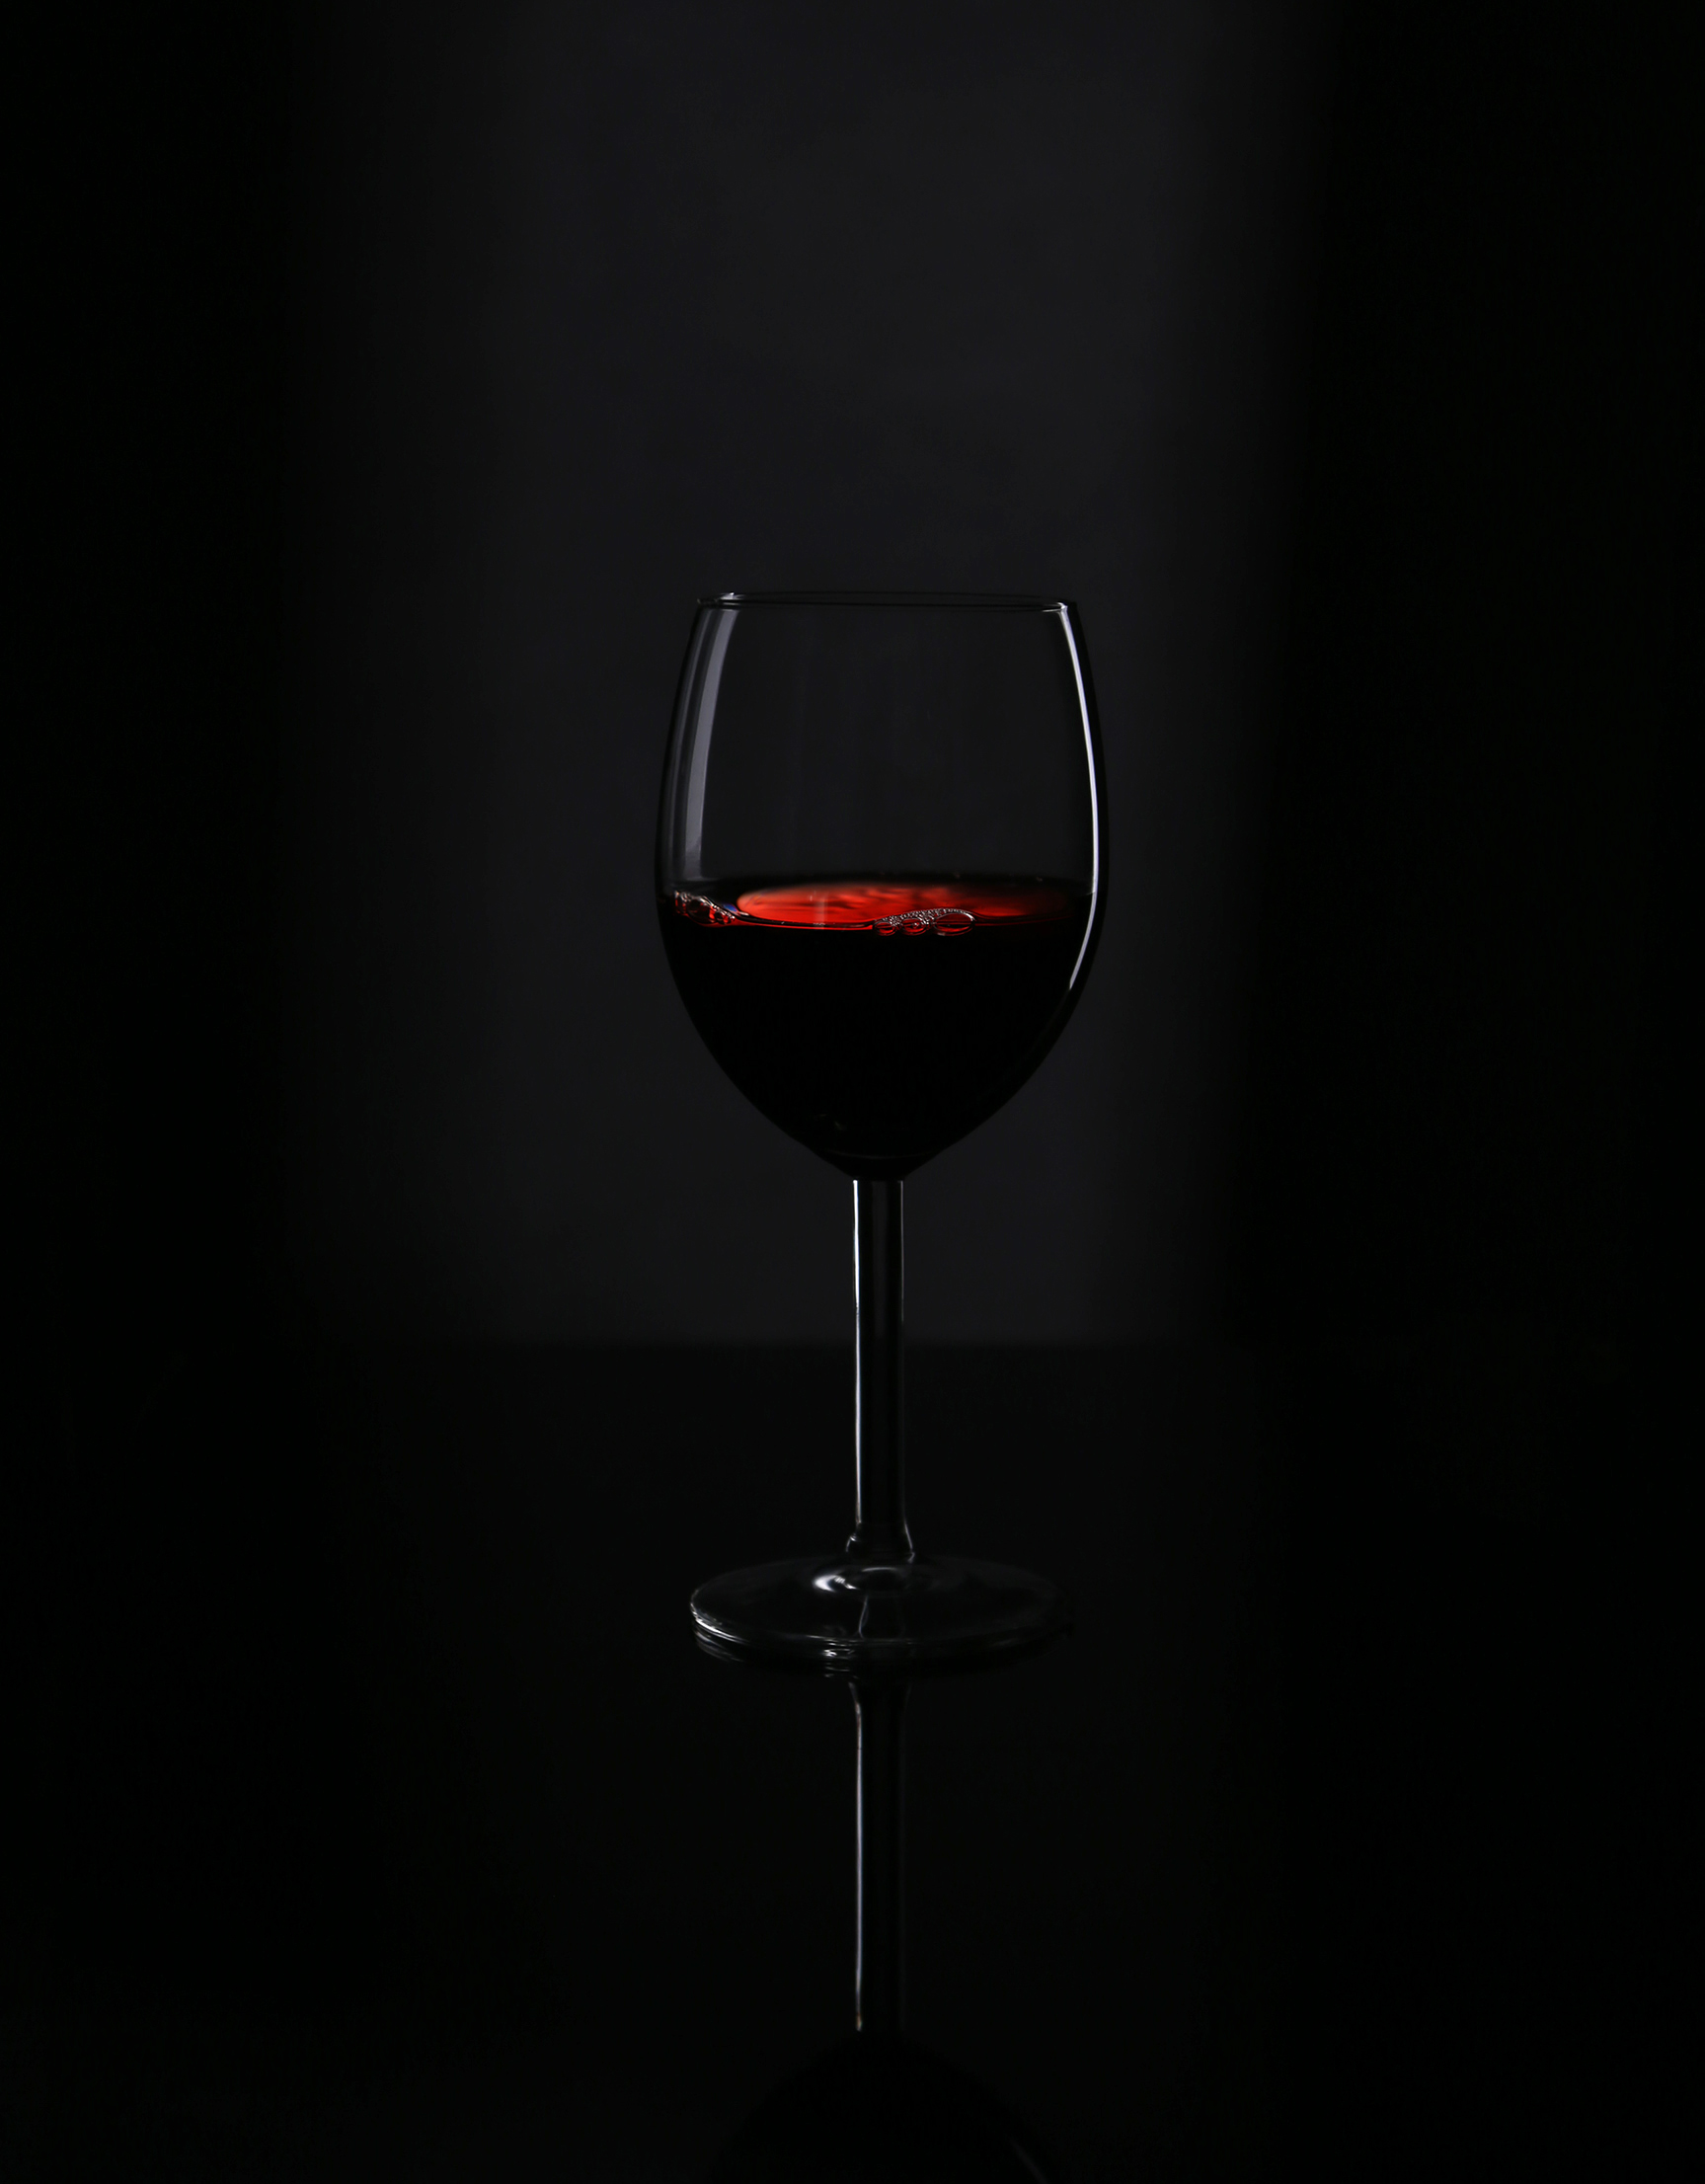 red wine www.dmfotographica.com